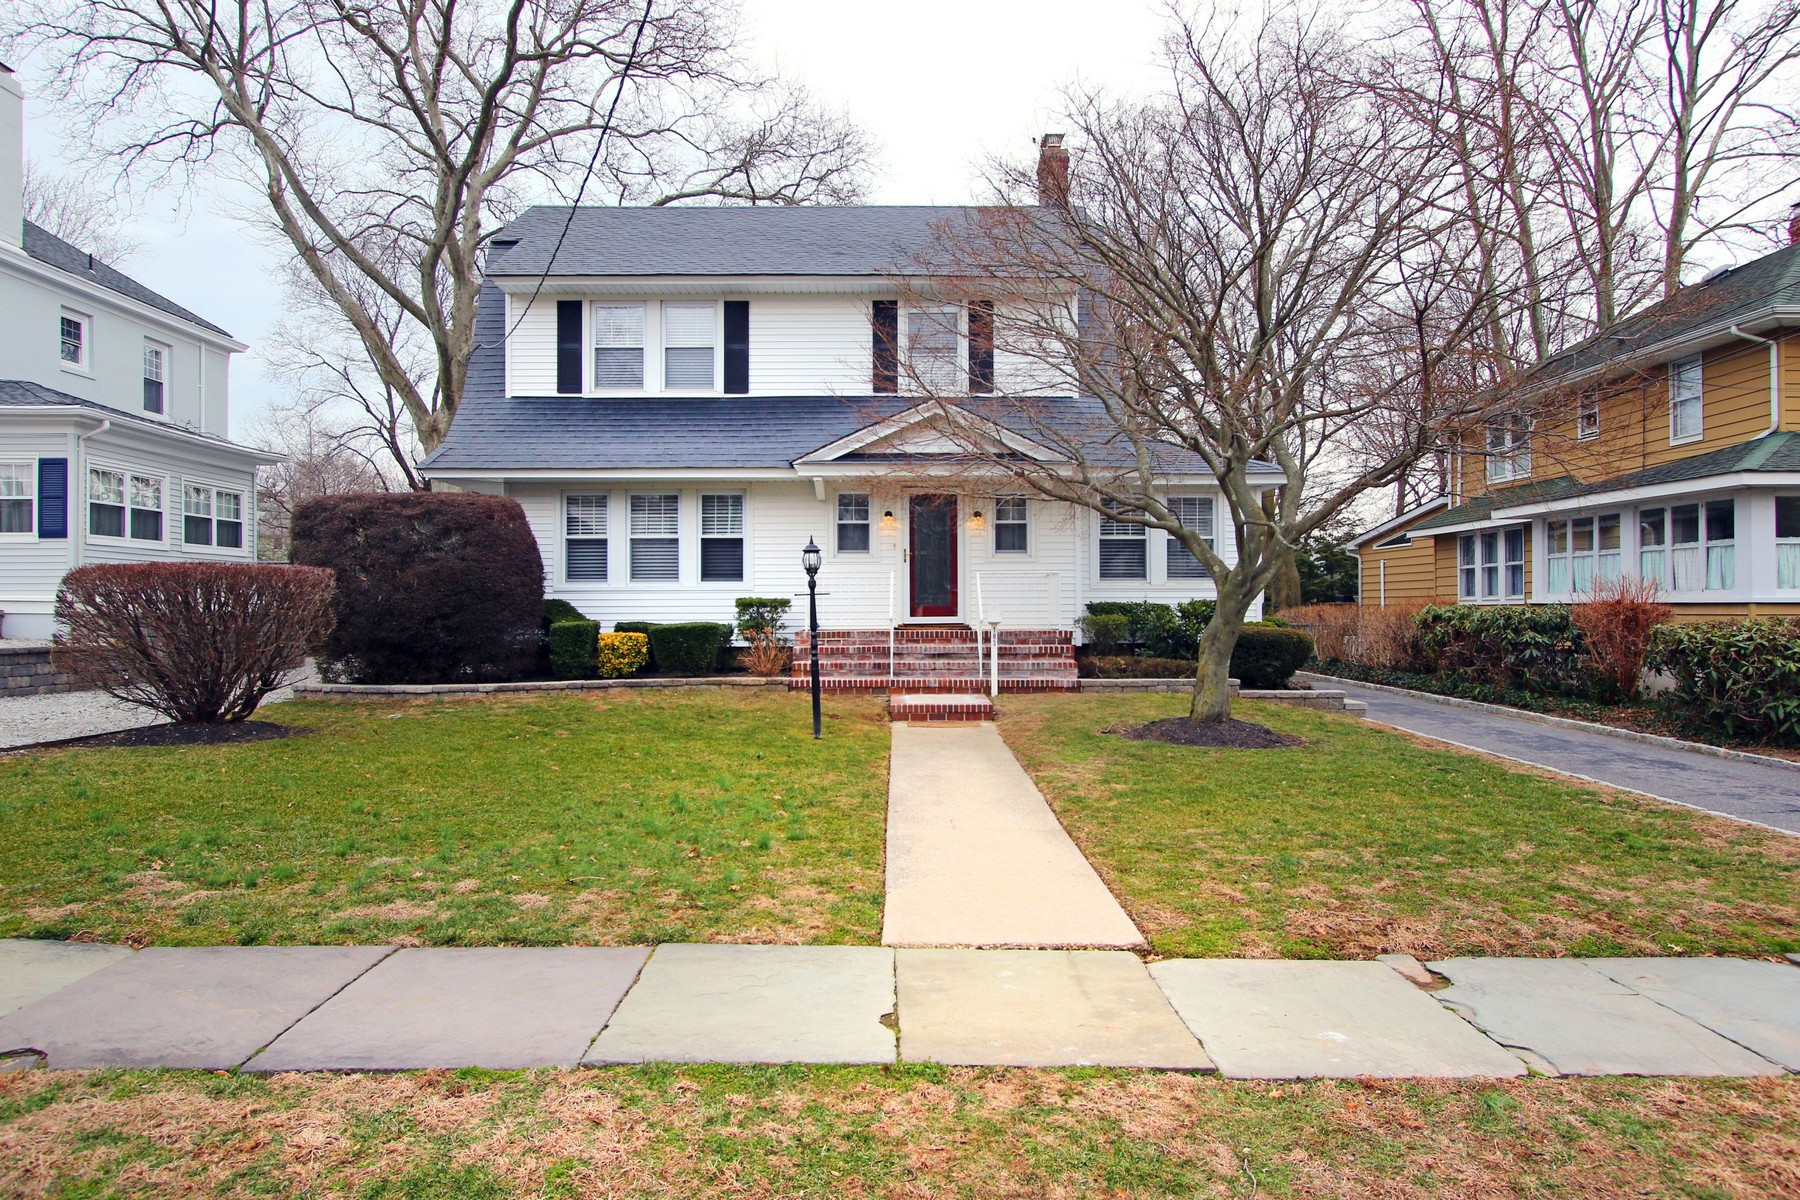 Single Family Home for Sale at End Your Search - Change Your Lifestyle - Where Life Is Good 183 Hudson Ave. Red Bank, New Jersey, 07701 United States